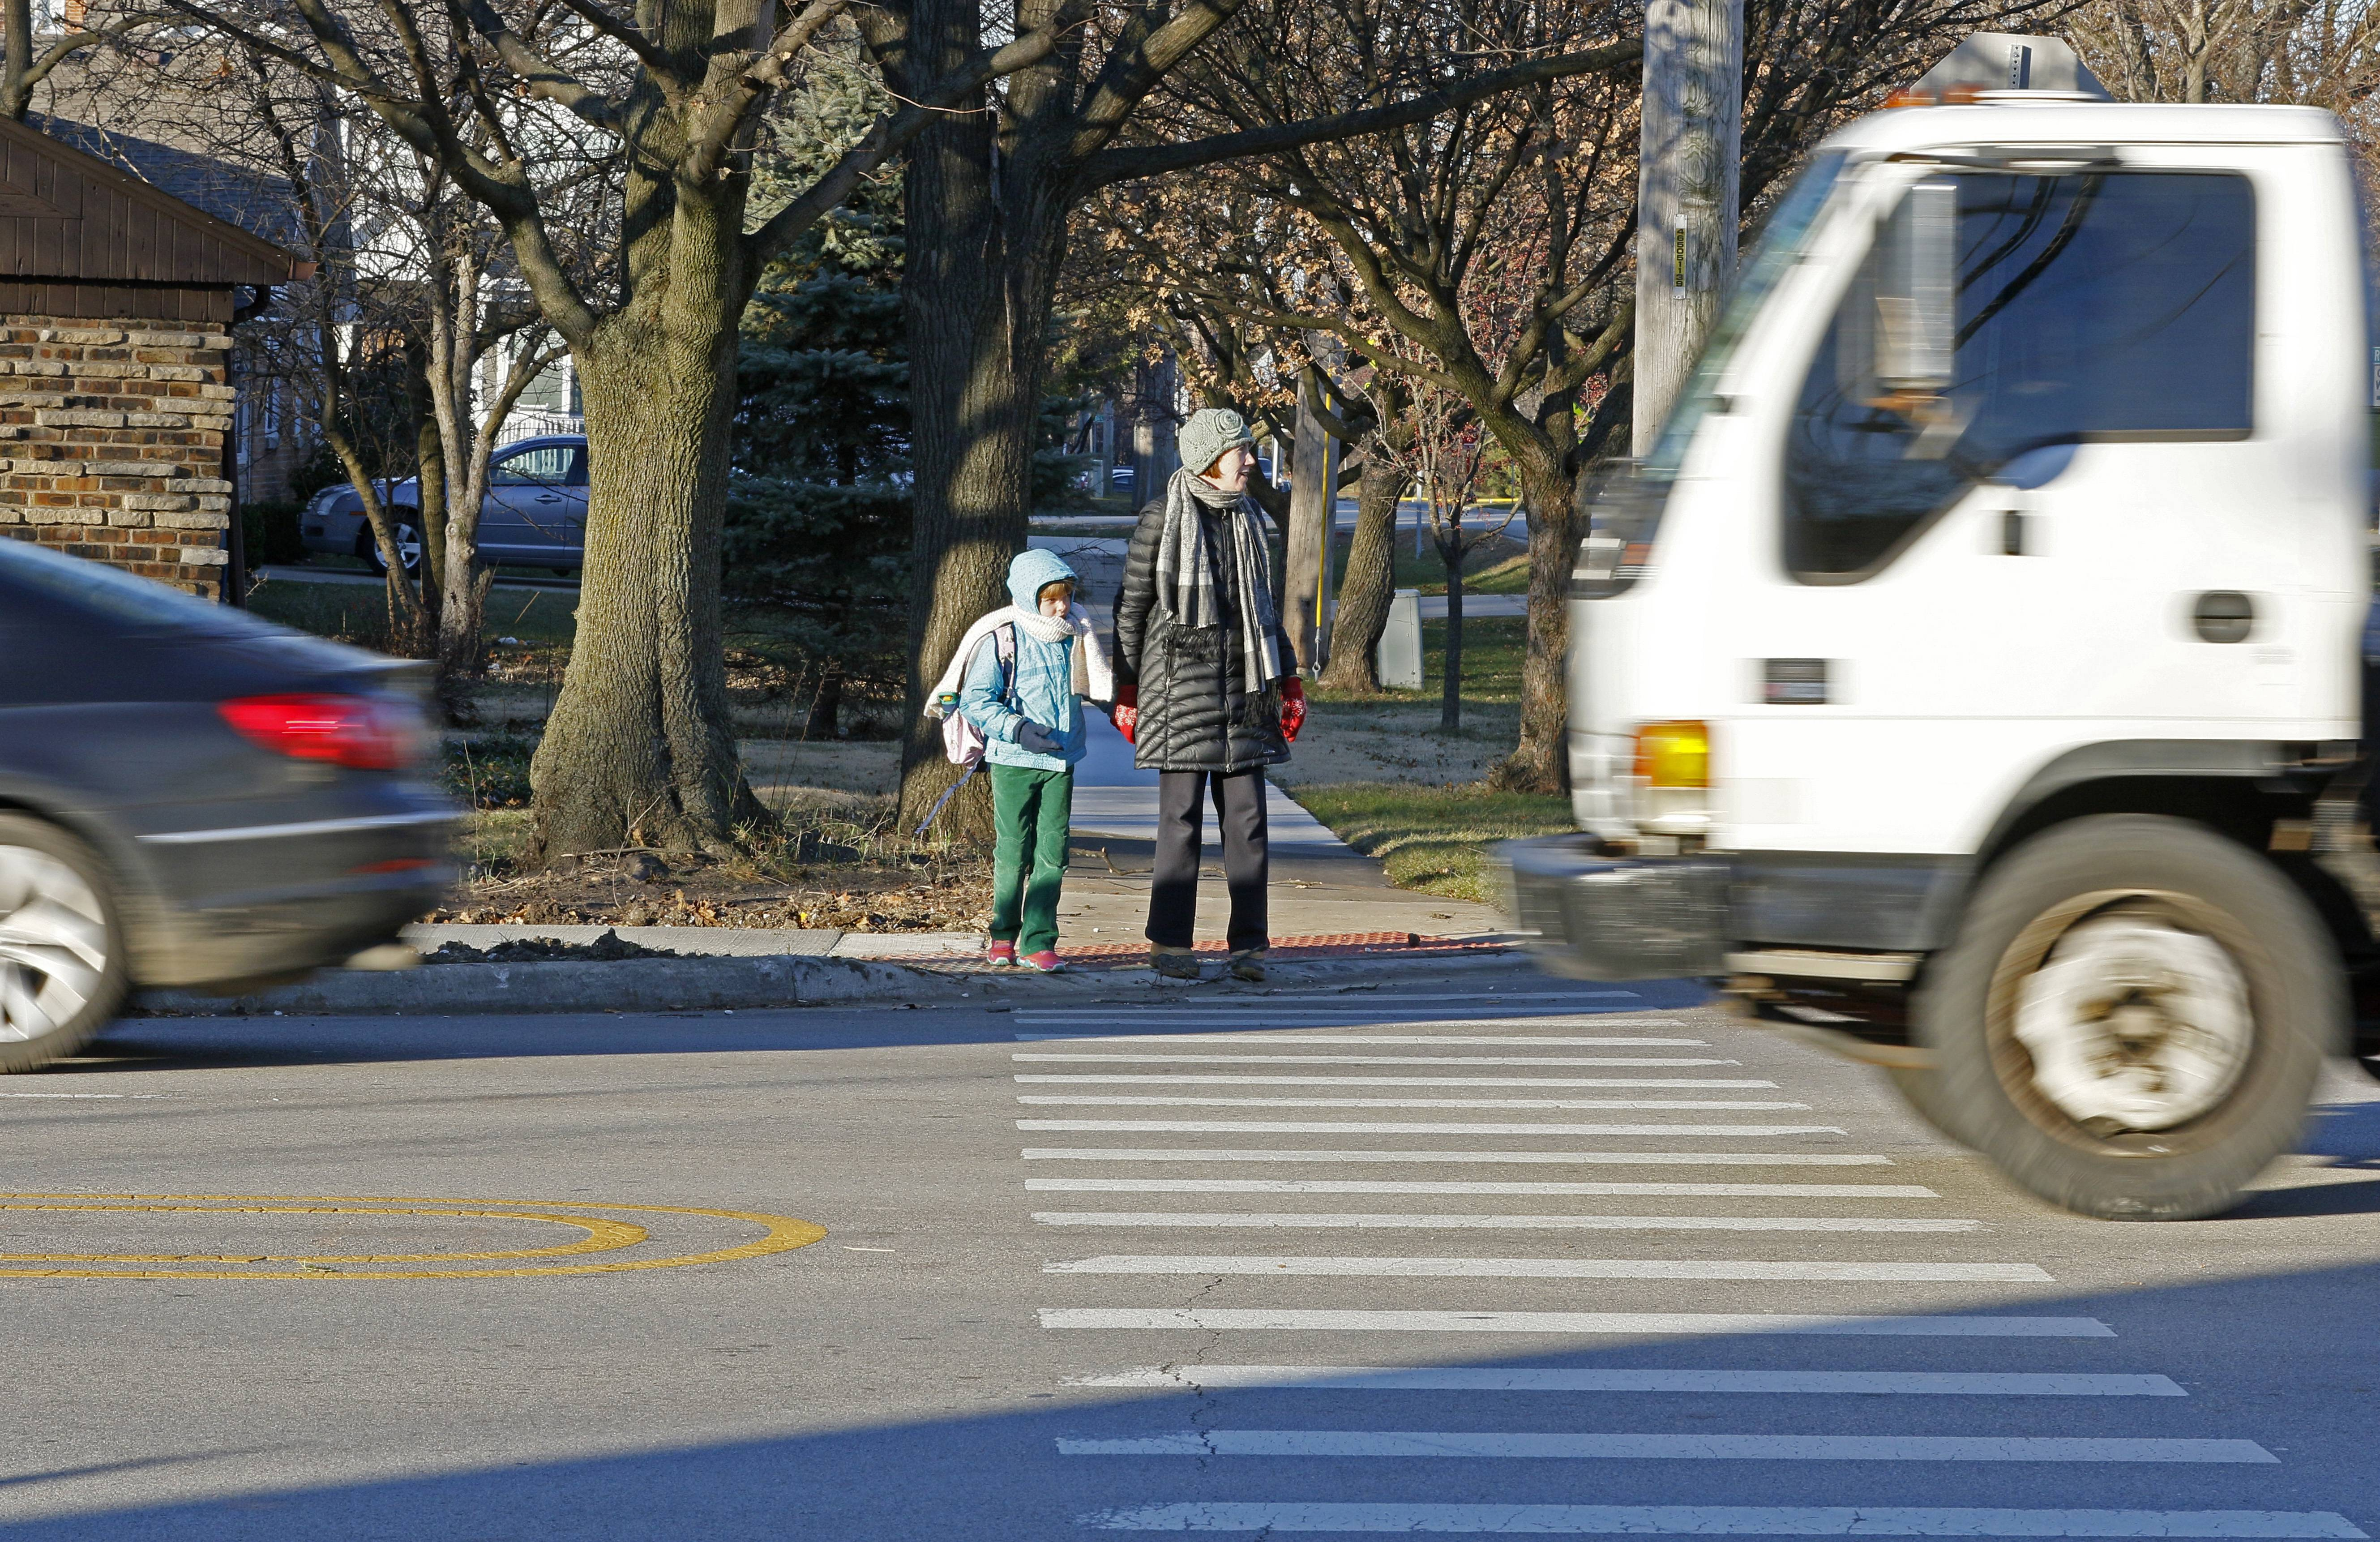 Walk at your own risk: Drivers oblivious to suburban crosswalks